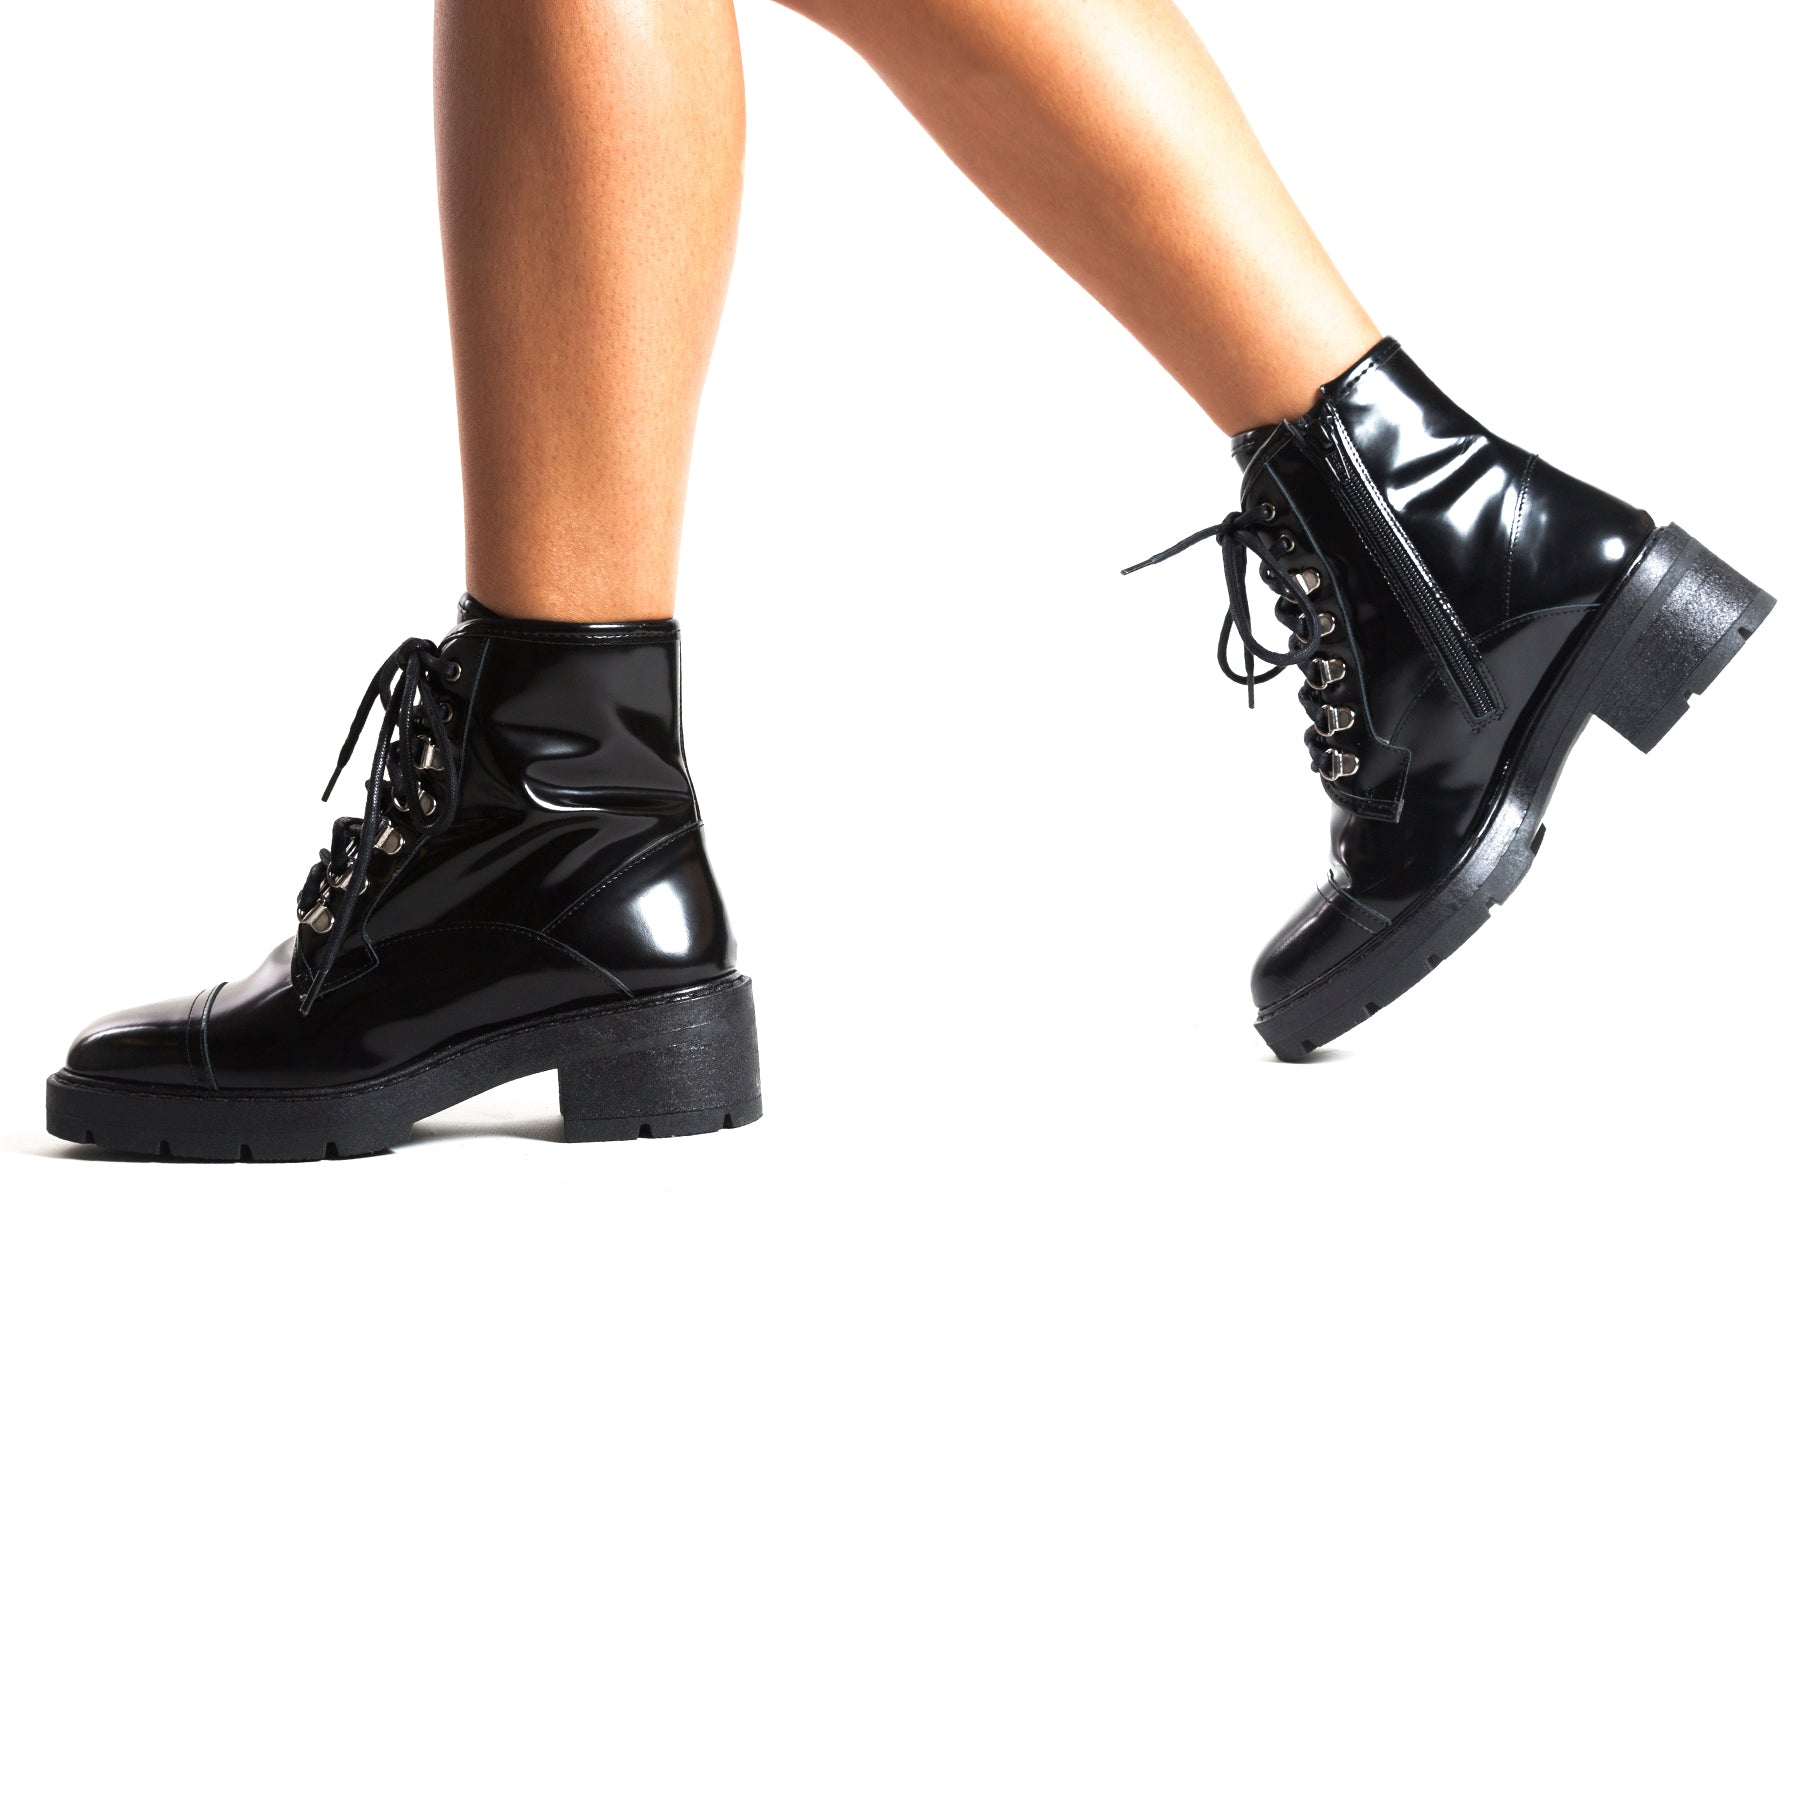 Jarna Black Leather Ankle Boots